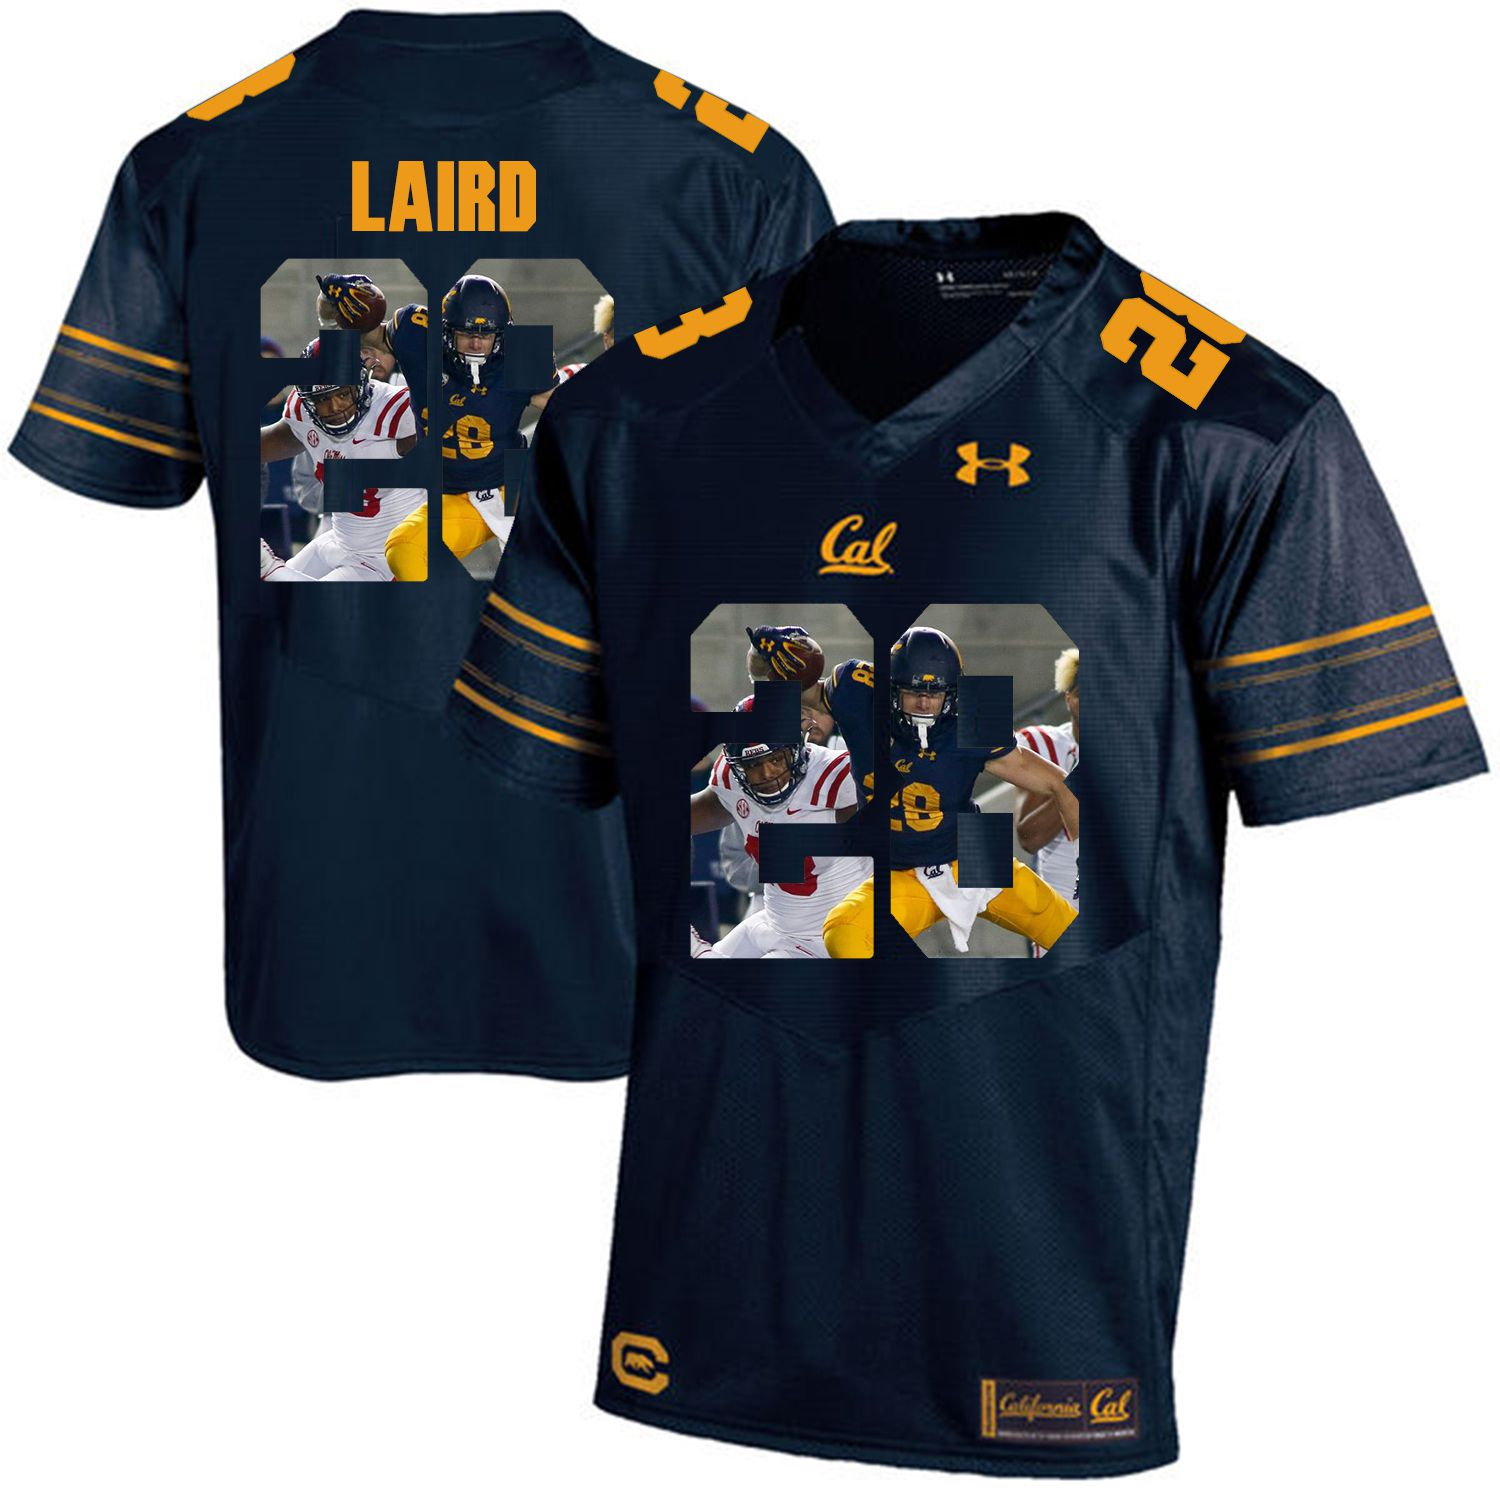 Men California Golden Bears 28 Patrick Laird Dark blue Customized NCAA Jerseys1